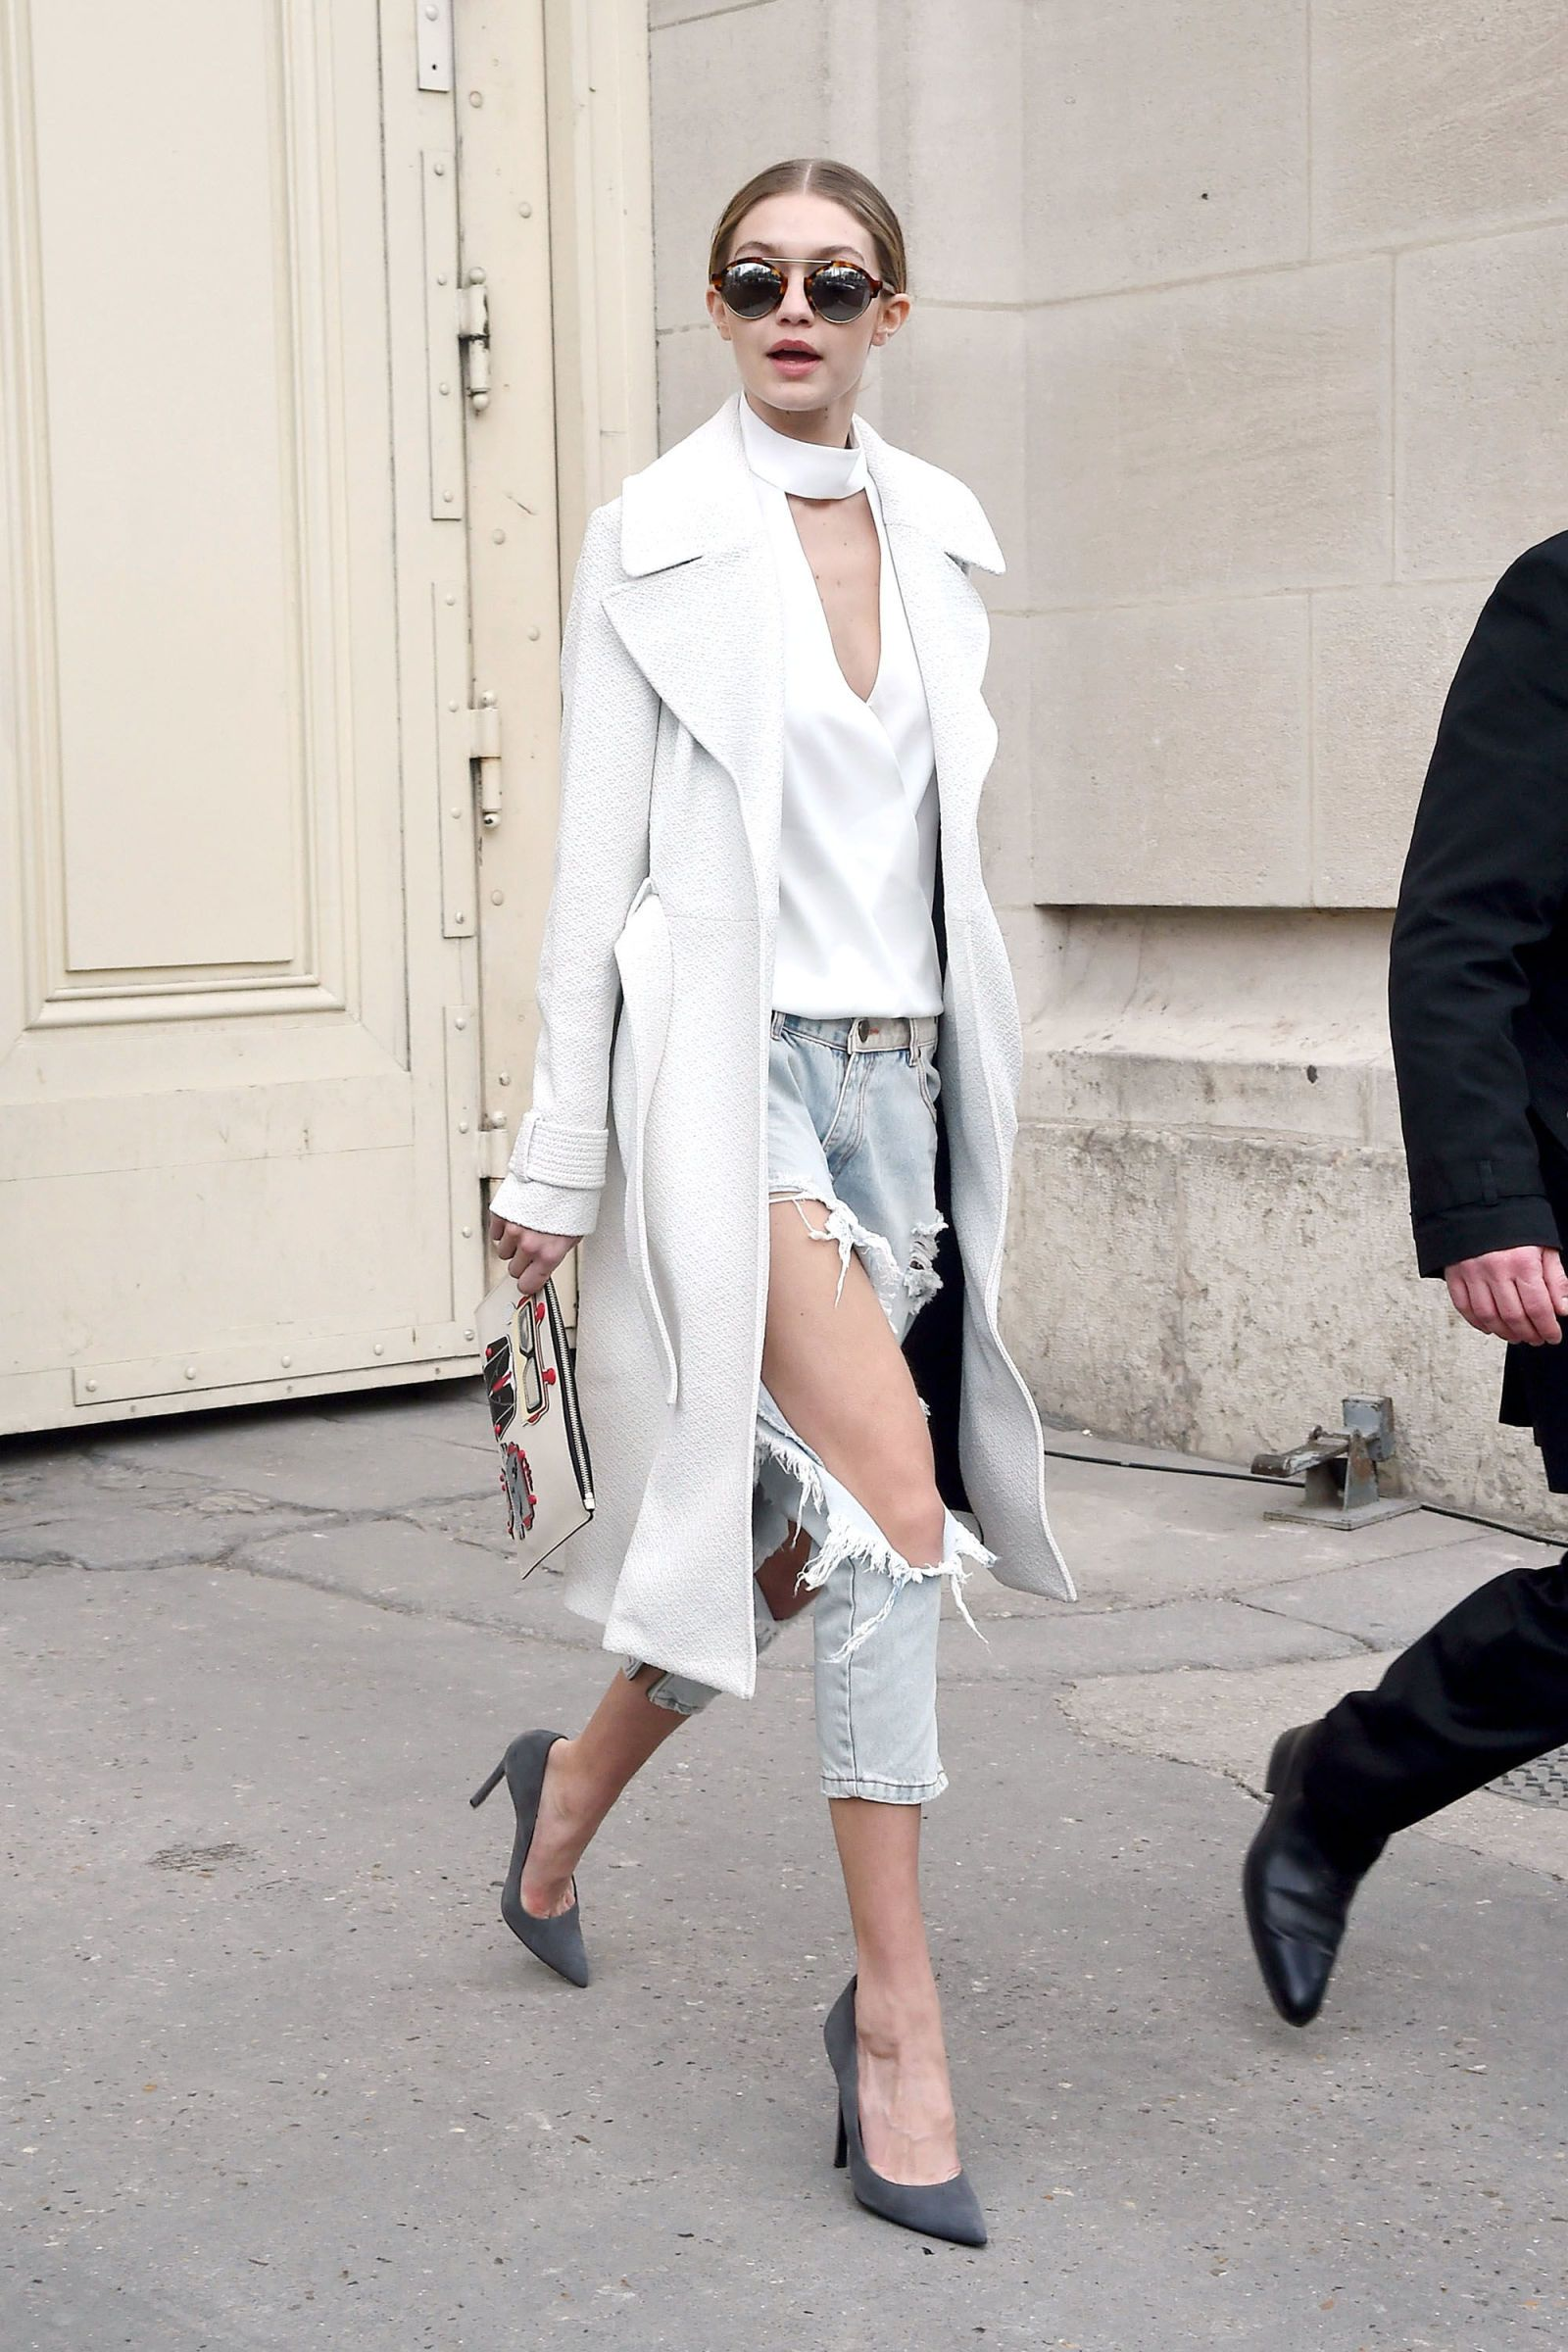 Gigi Hadid steps out in Paris in ripped jeans, a white coat and white neckband top. See all the model's best street style outfits here: